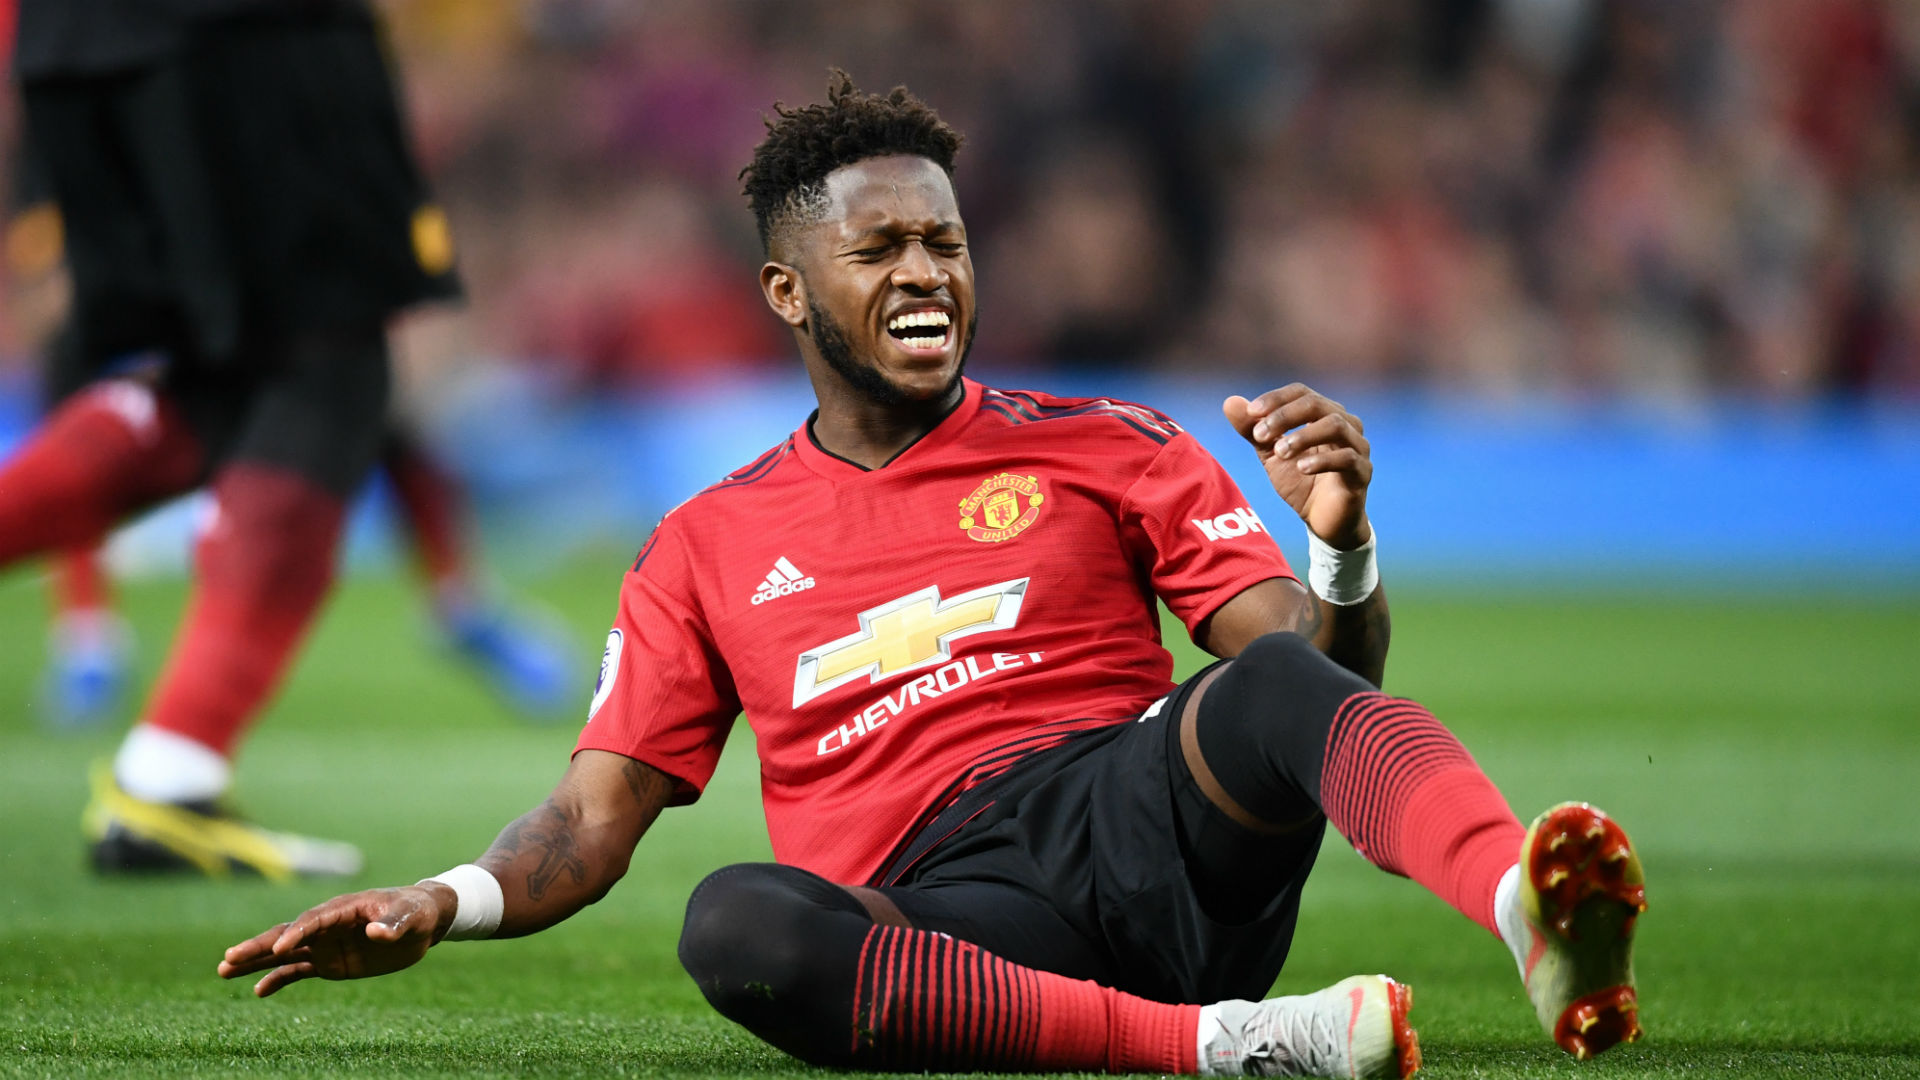 Jose Mourinho says Fred will get more opportunities at Manchester United once they have improved their defensive stability.